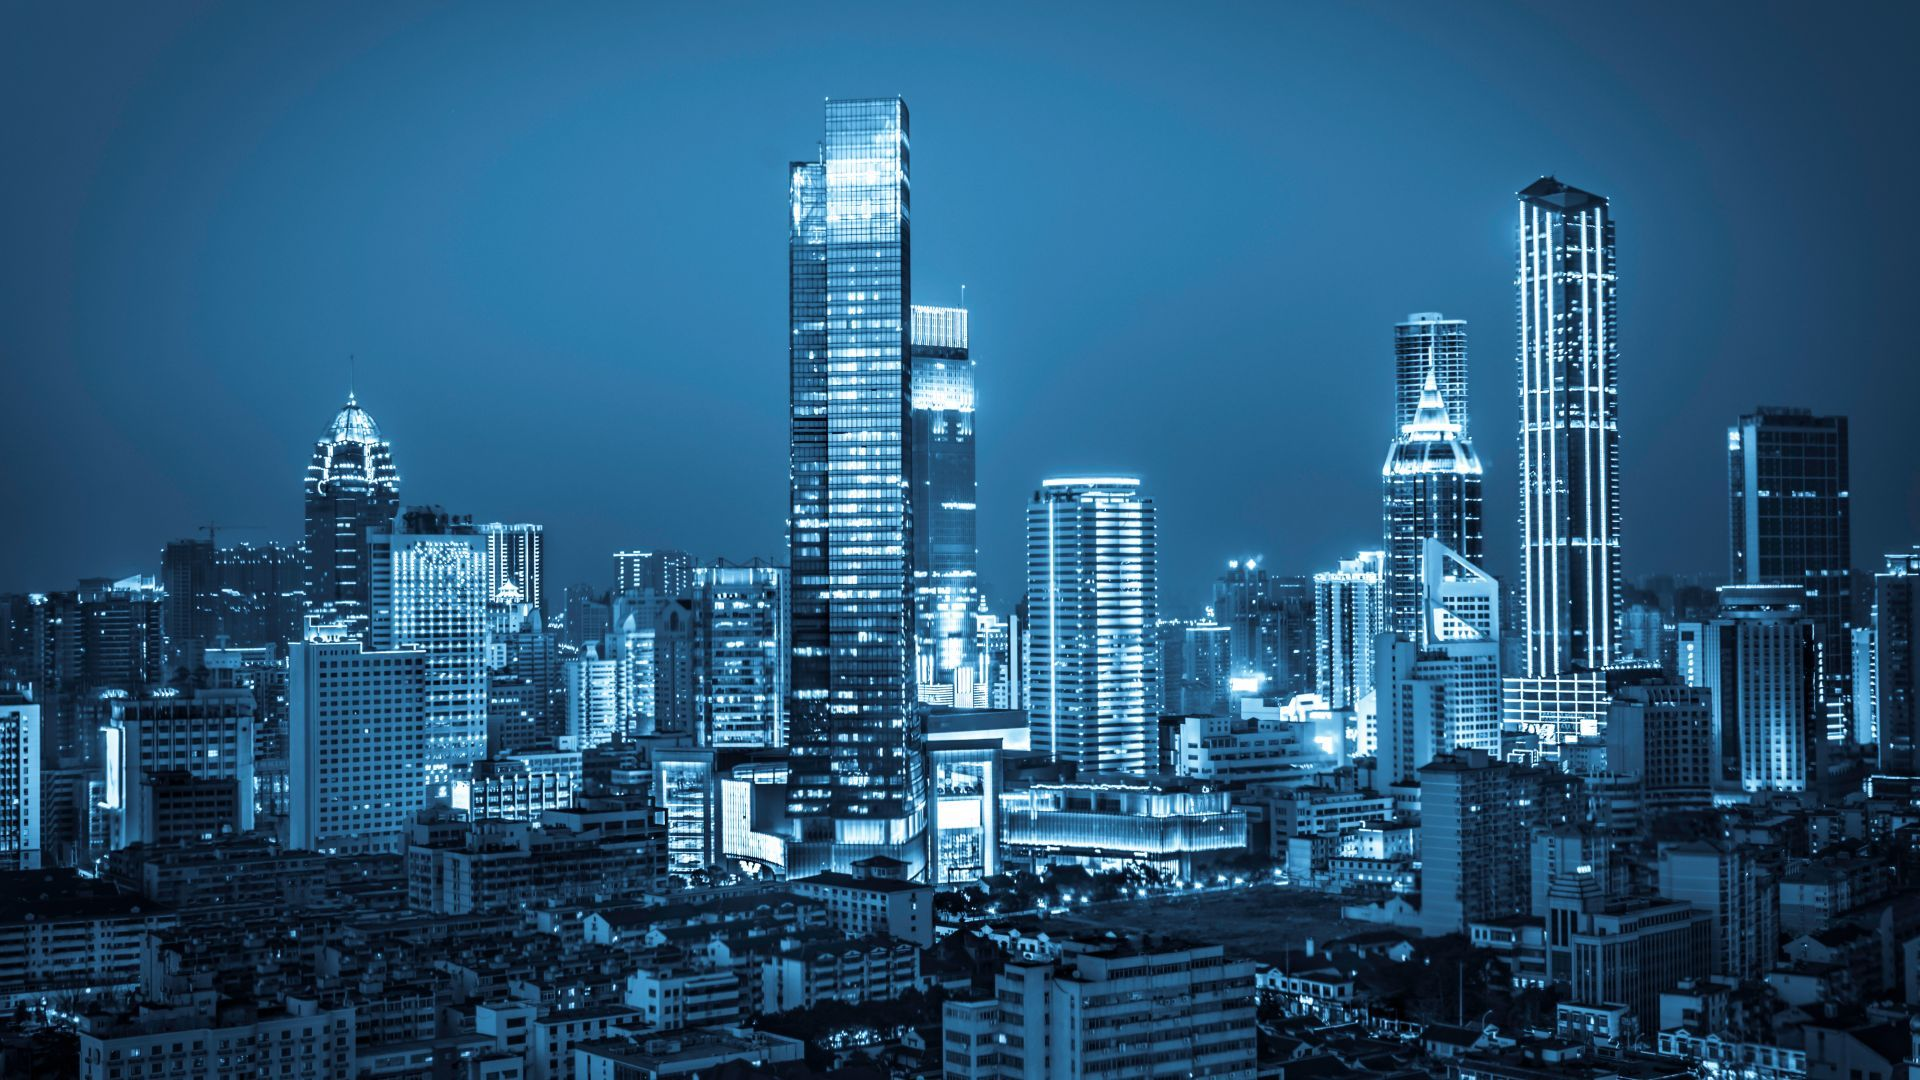 Download Wallpapers Of City Nightscape Cityscape Urban Modern Skyline Hd 5k World 11900 Available In Hd Amazing Architecture Skyline Image Skyline